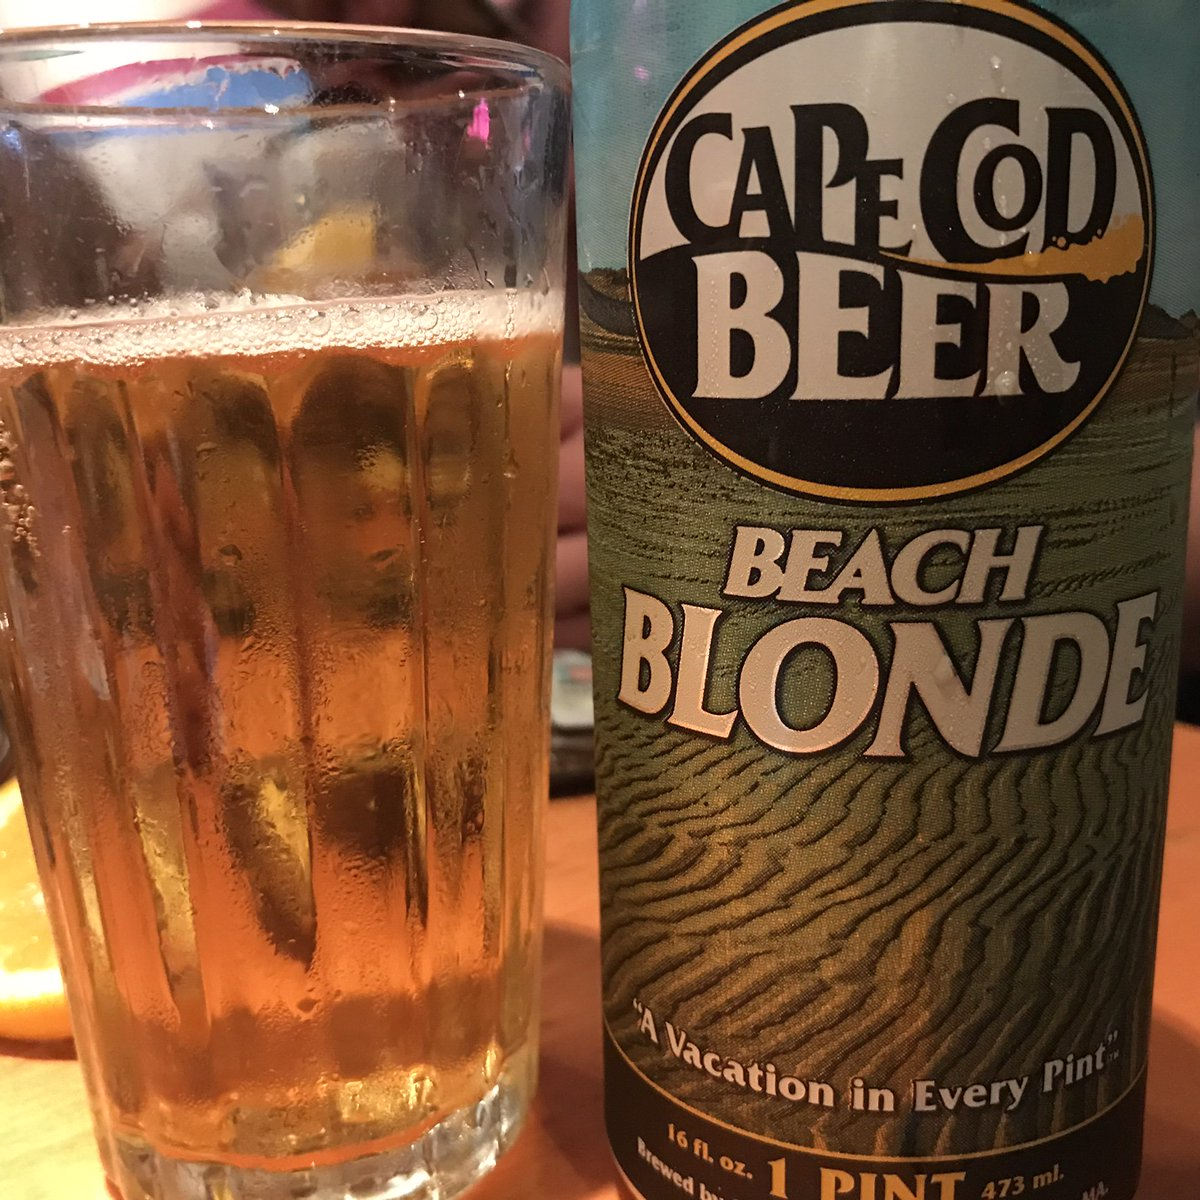 Beach Blonde from Cape Cod Beer to quench hot day on bicycle